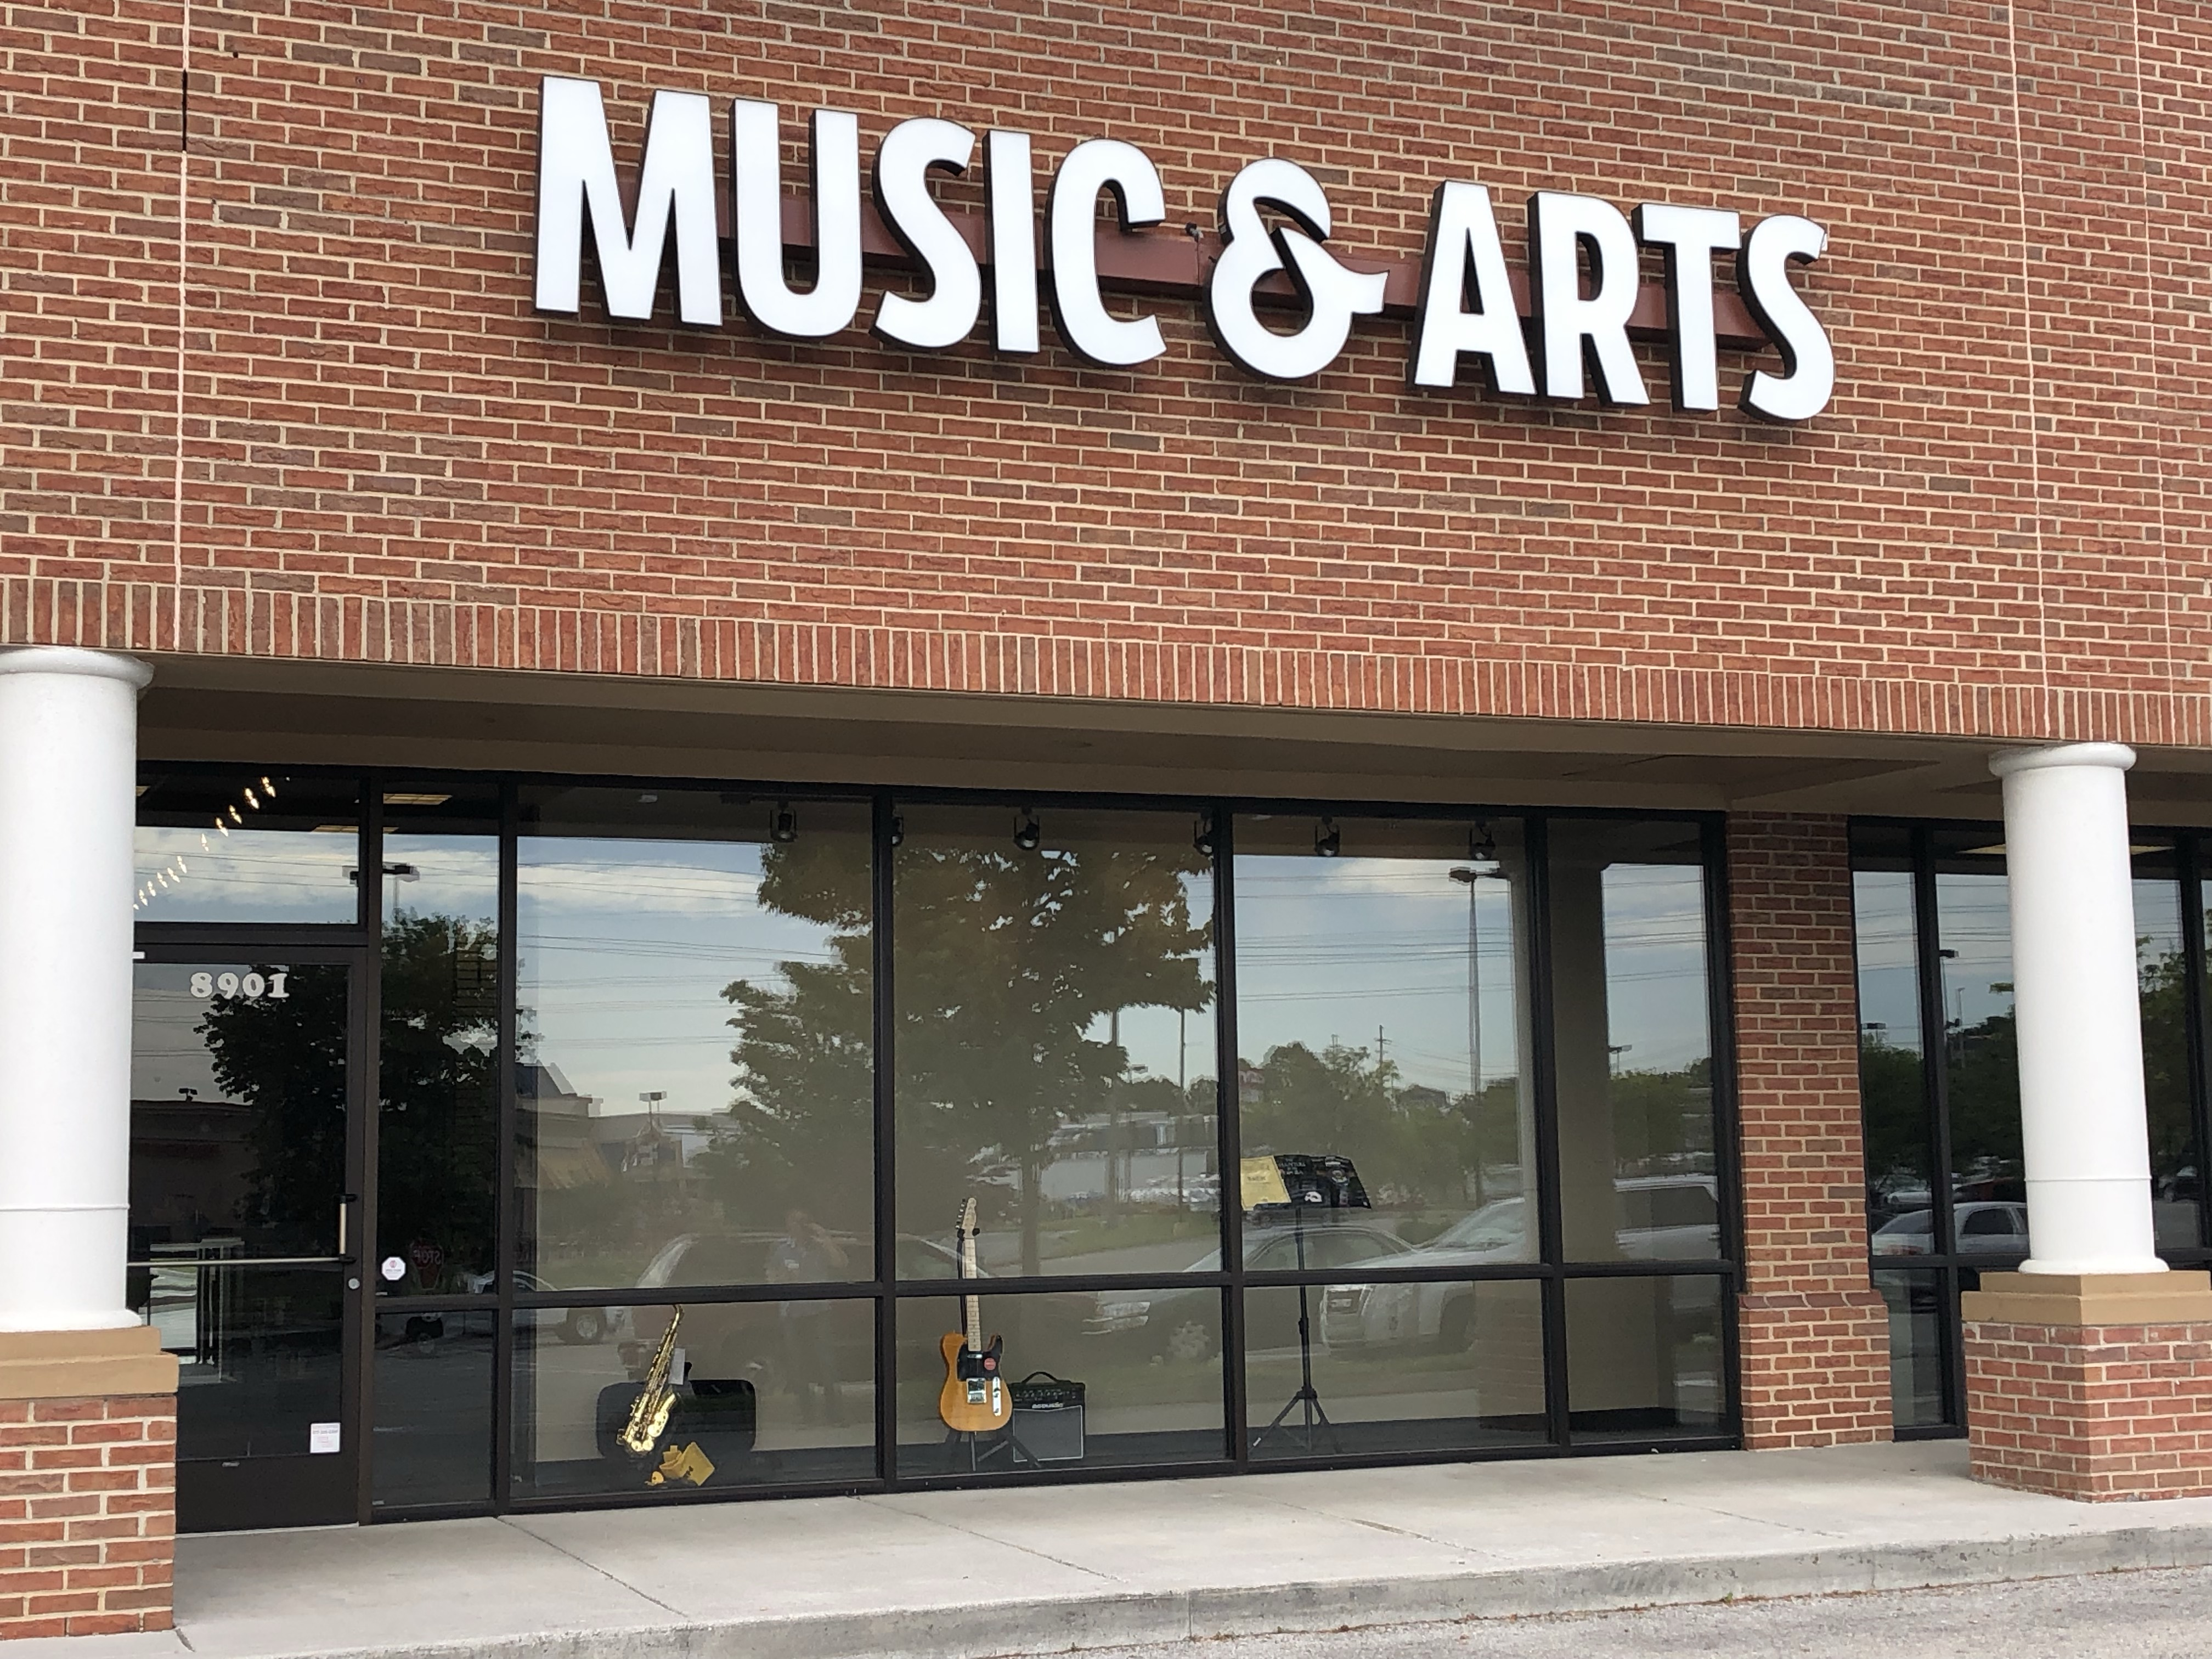 instrument rentals music lessons in west knoxville tn music arts. Black Bedroom Furniture Sets. Home Design Ideas